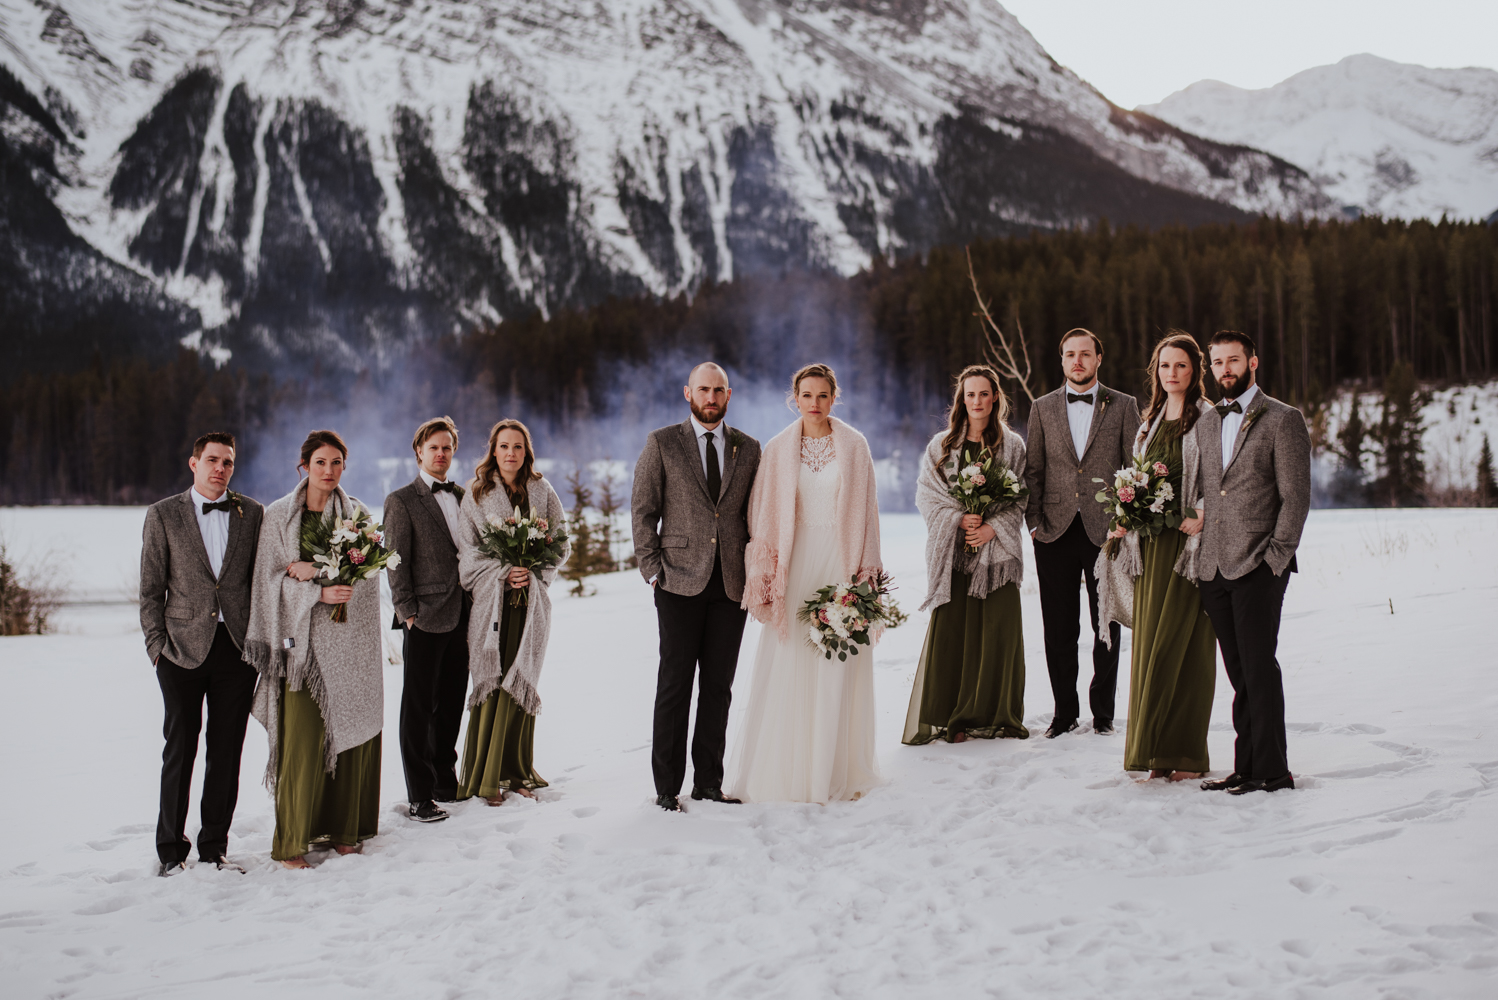 Canmore-Wedding-Photographer-61.jpg